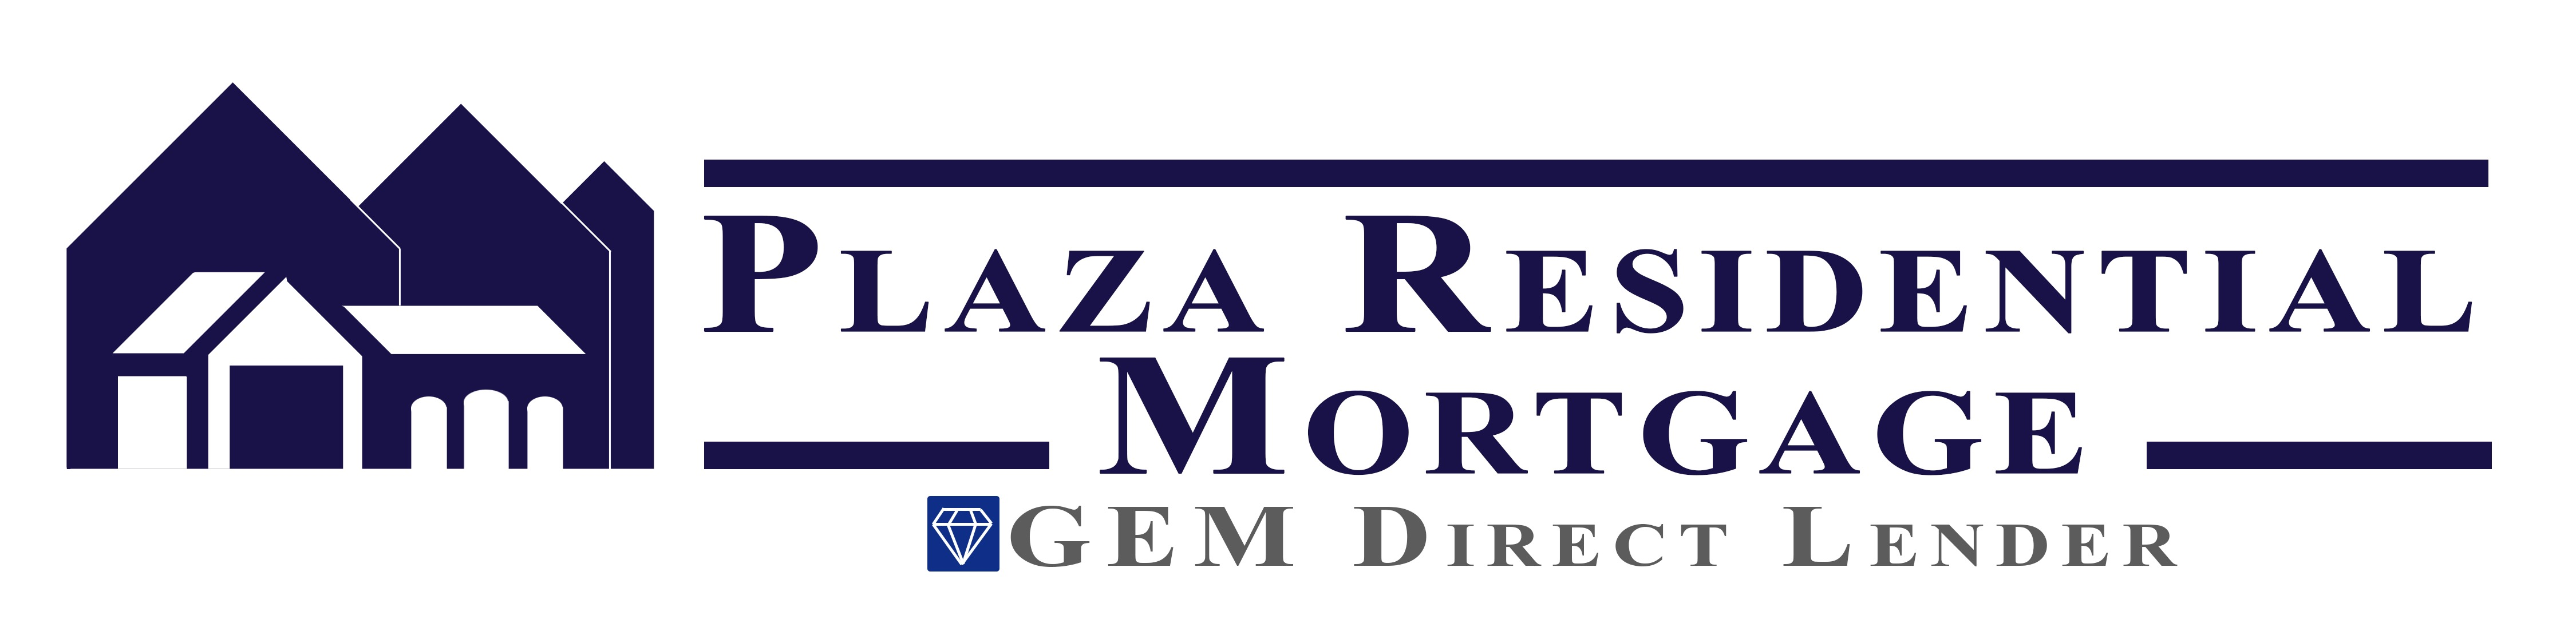 Plaza Residential Mortgage Logo